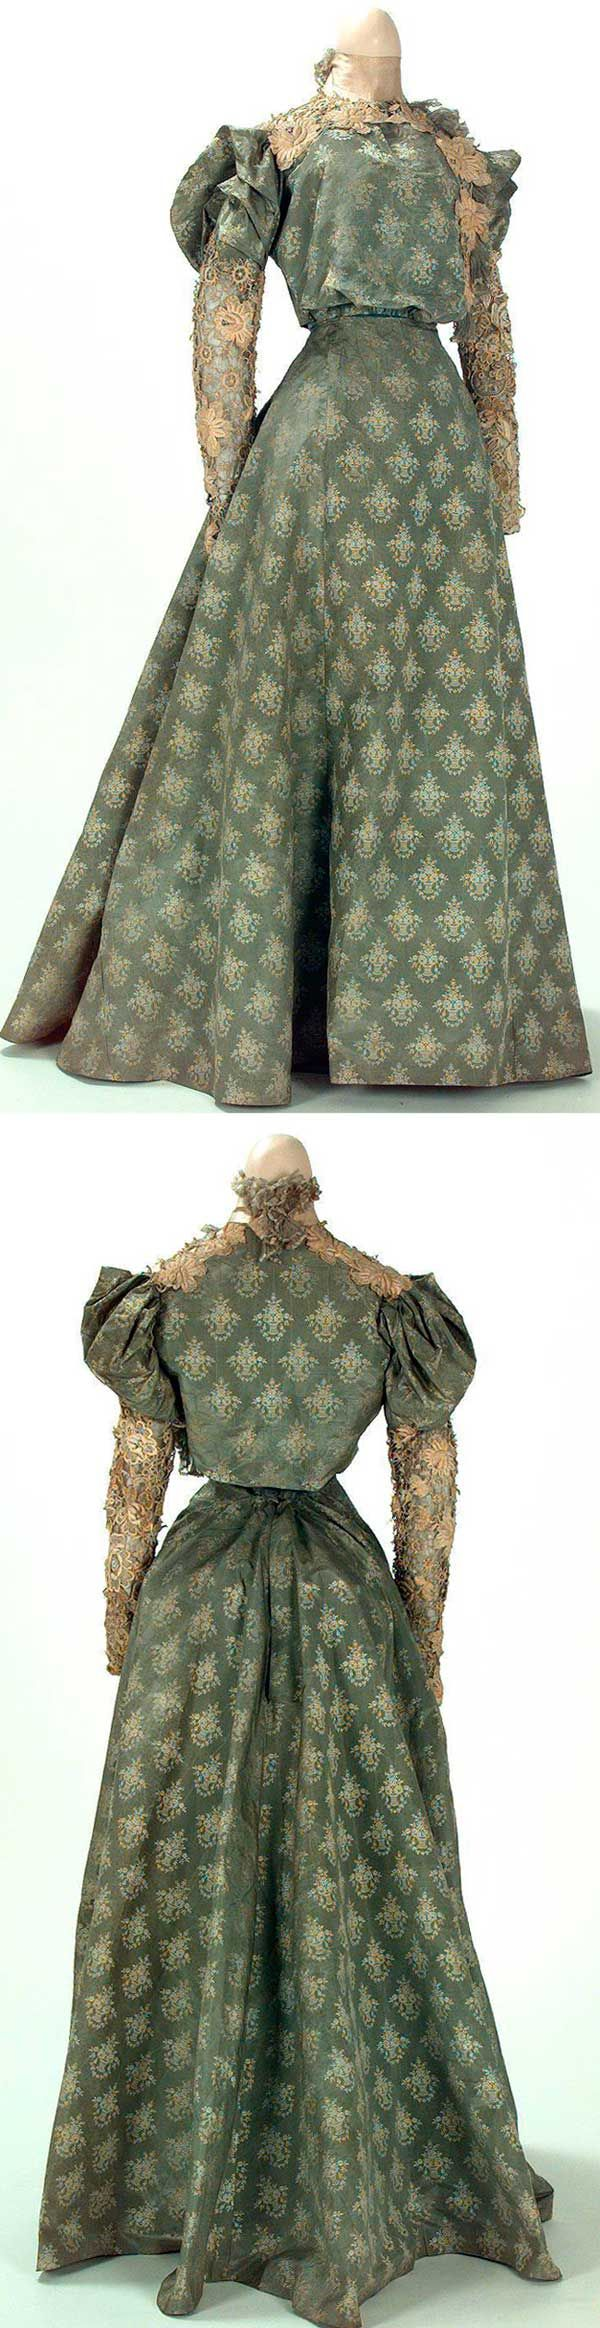 Dress, E. Honnet, Paris, ca. 1895-1900. Textile Museum & Documentation Center of Terrassa (IMATEX)